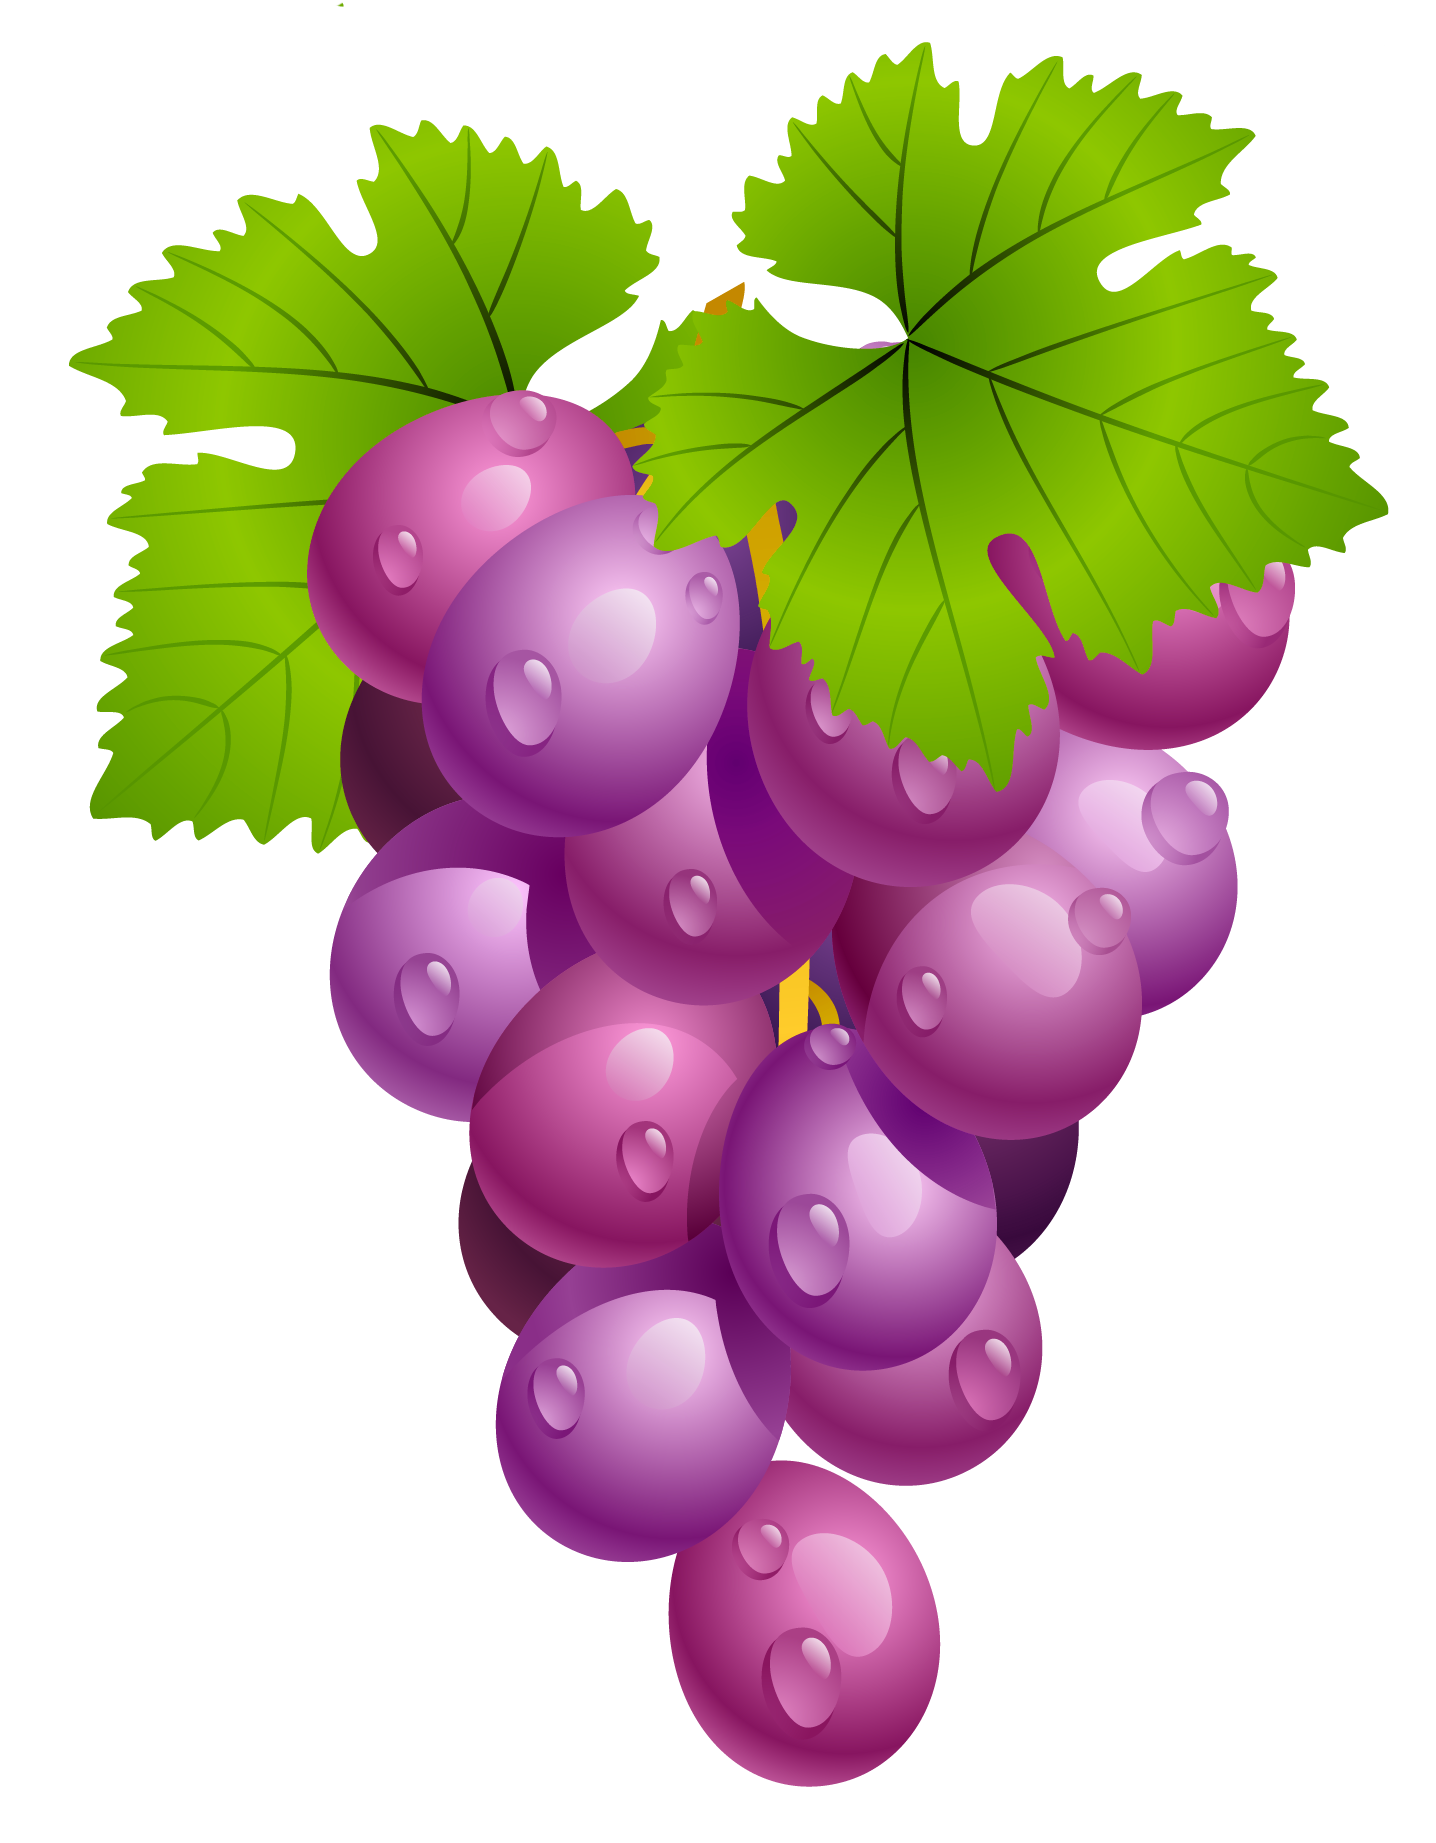 Gardening clipart agriculture science. Grapes with leaves png